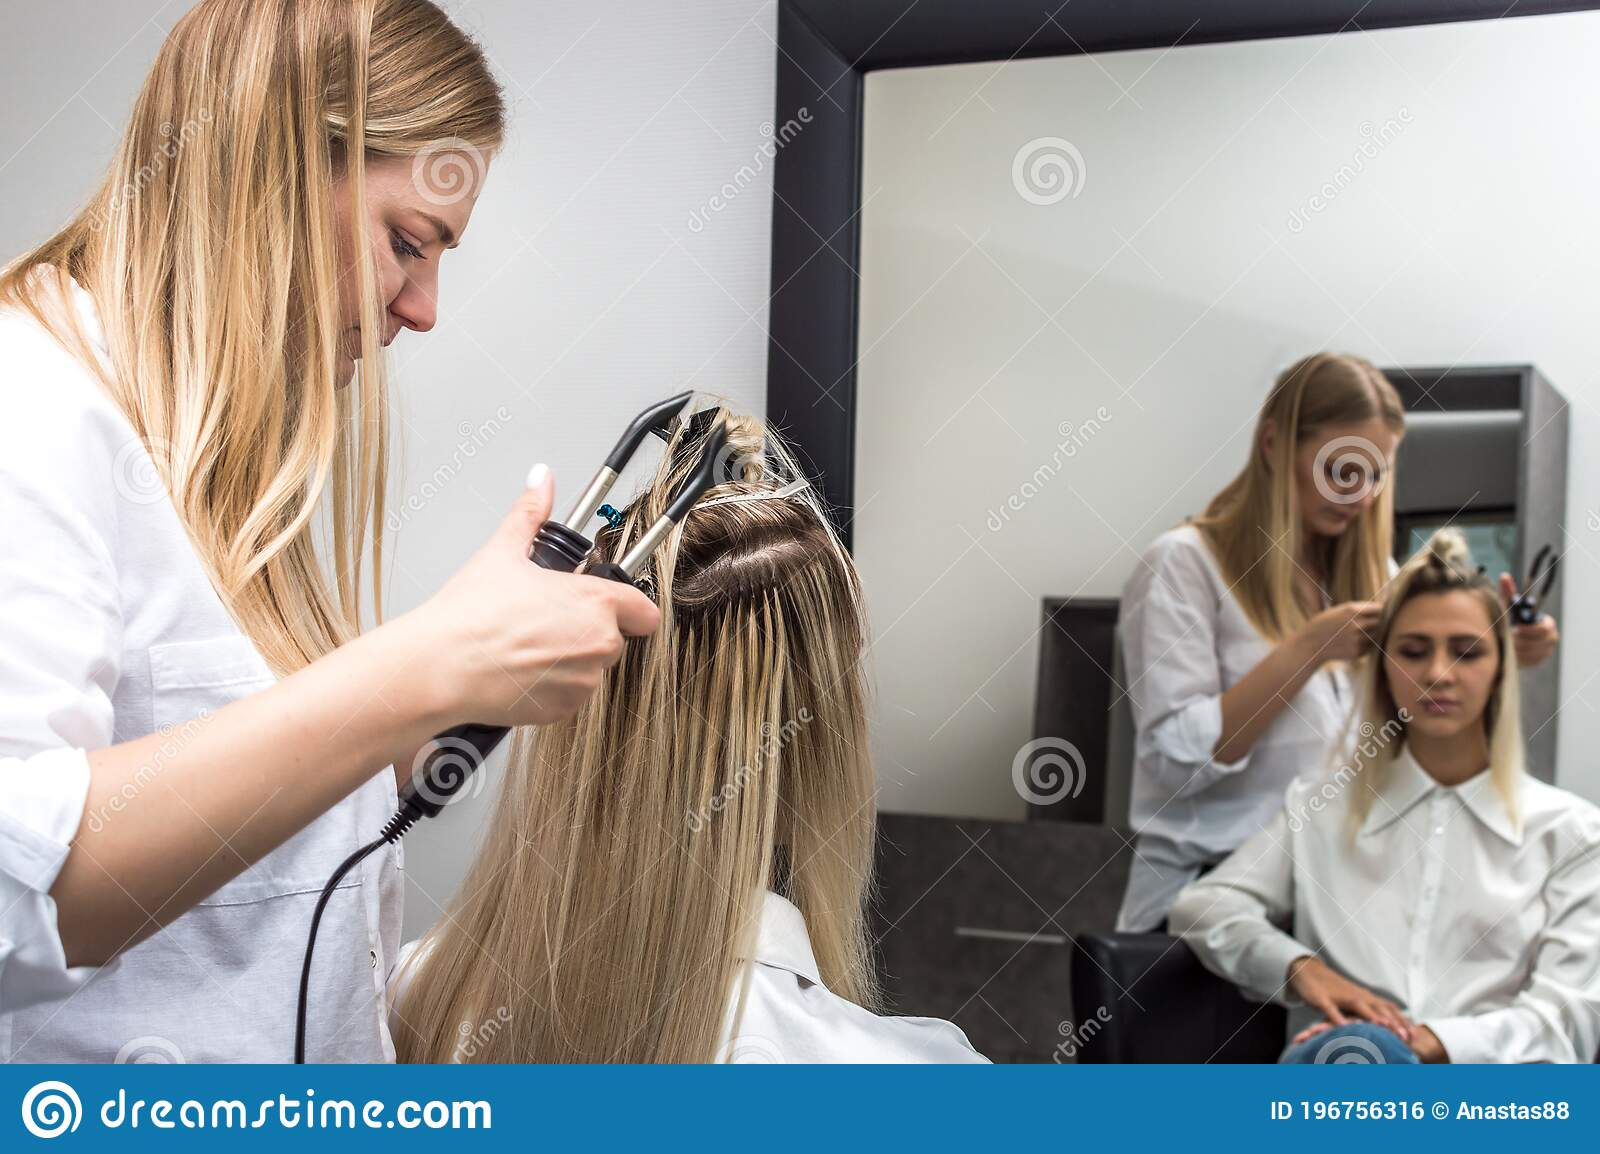 Hair Extension For A Client By A Hairdresser In A Beauty Salon Stock Photo Image Of Mirror Tails 196756316